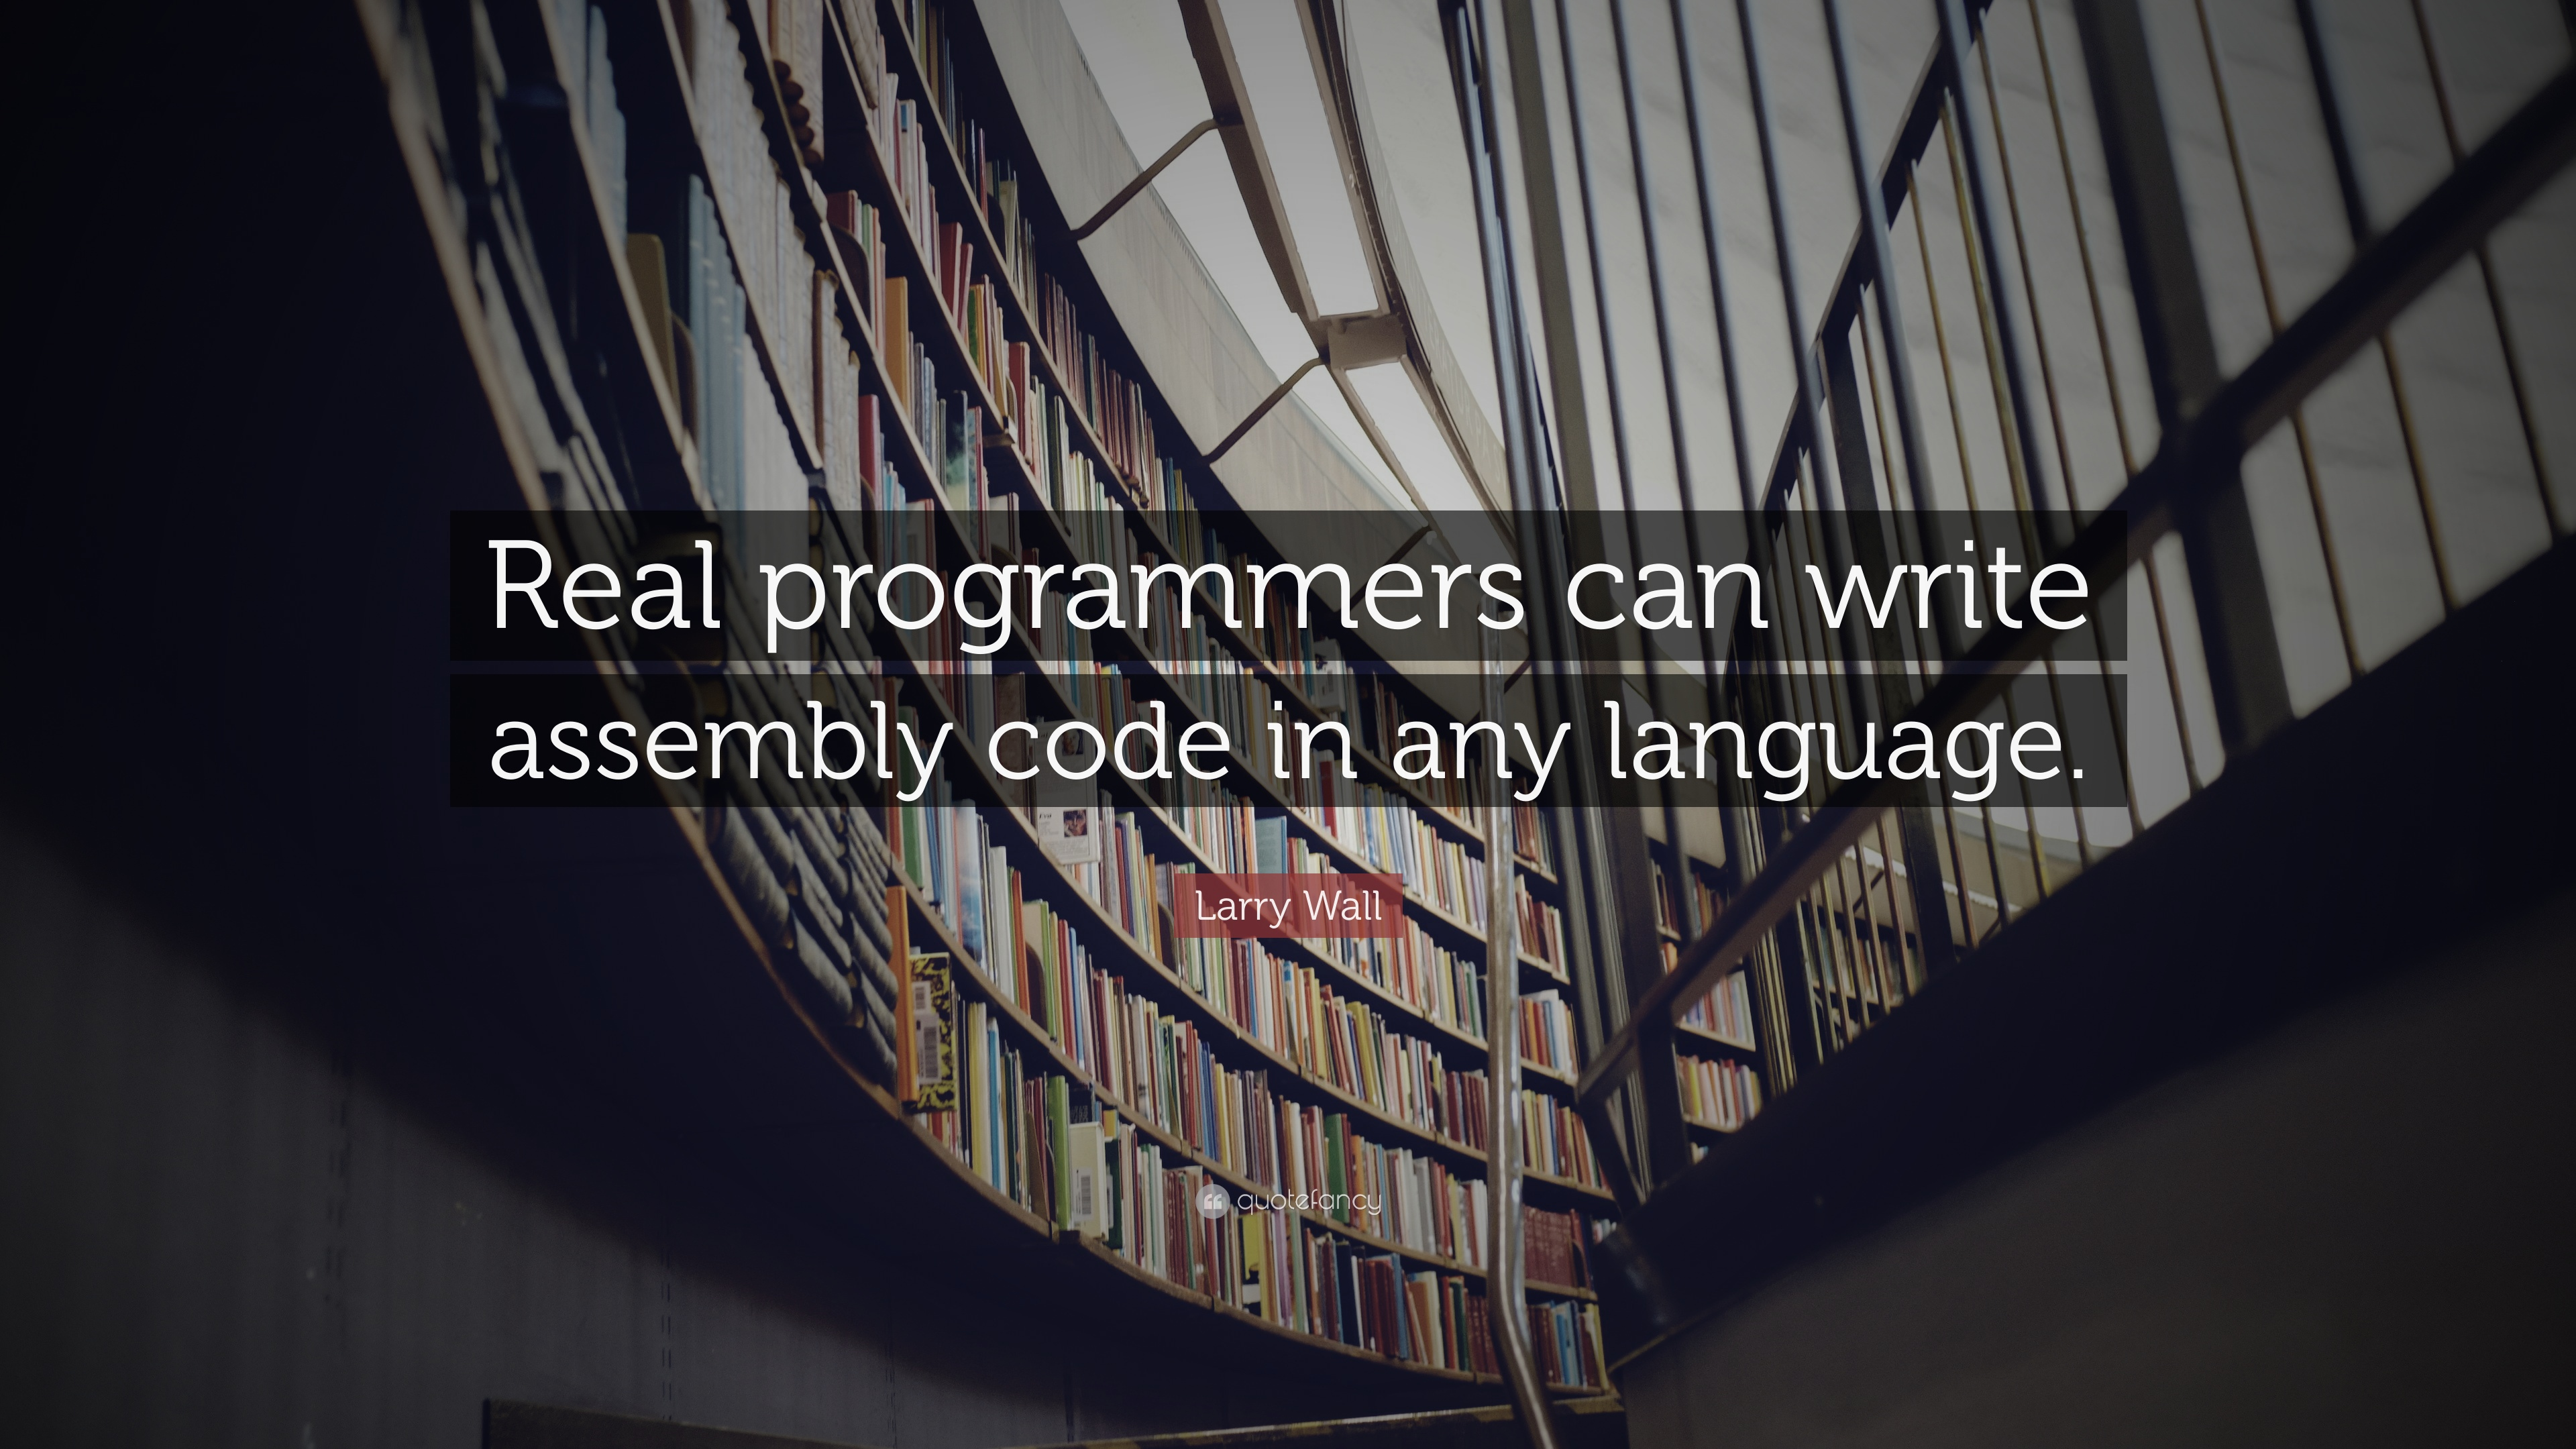 Real programmers can write assembly code in any language translate